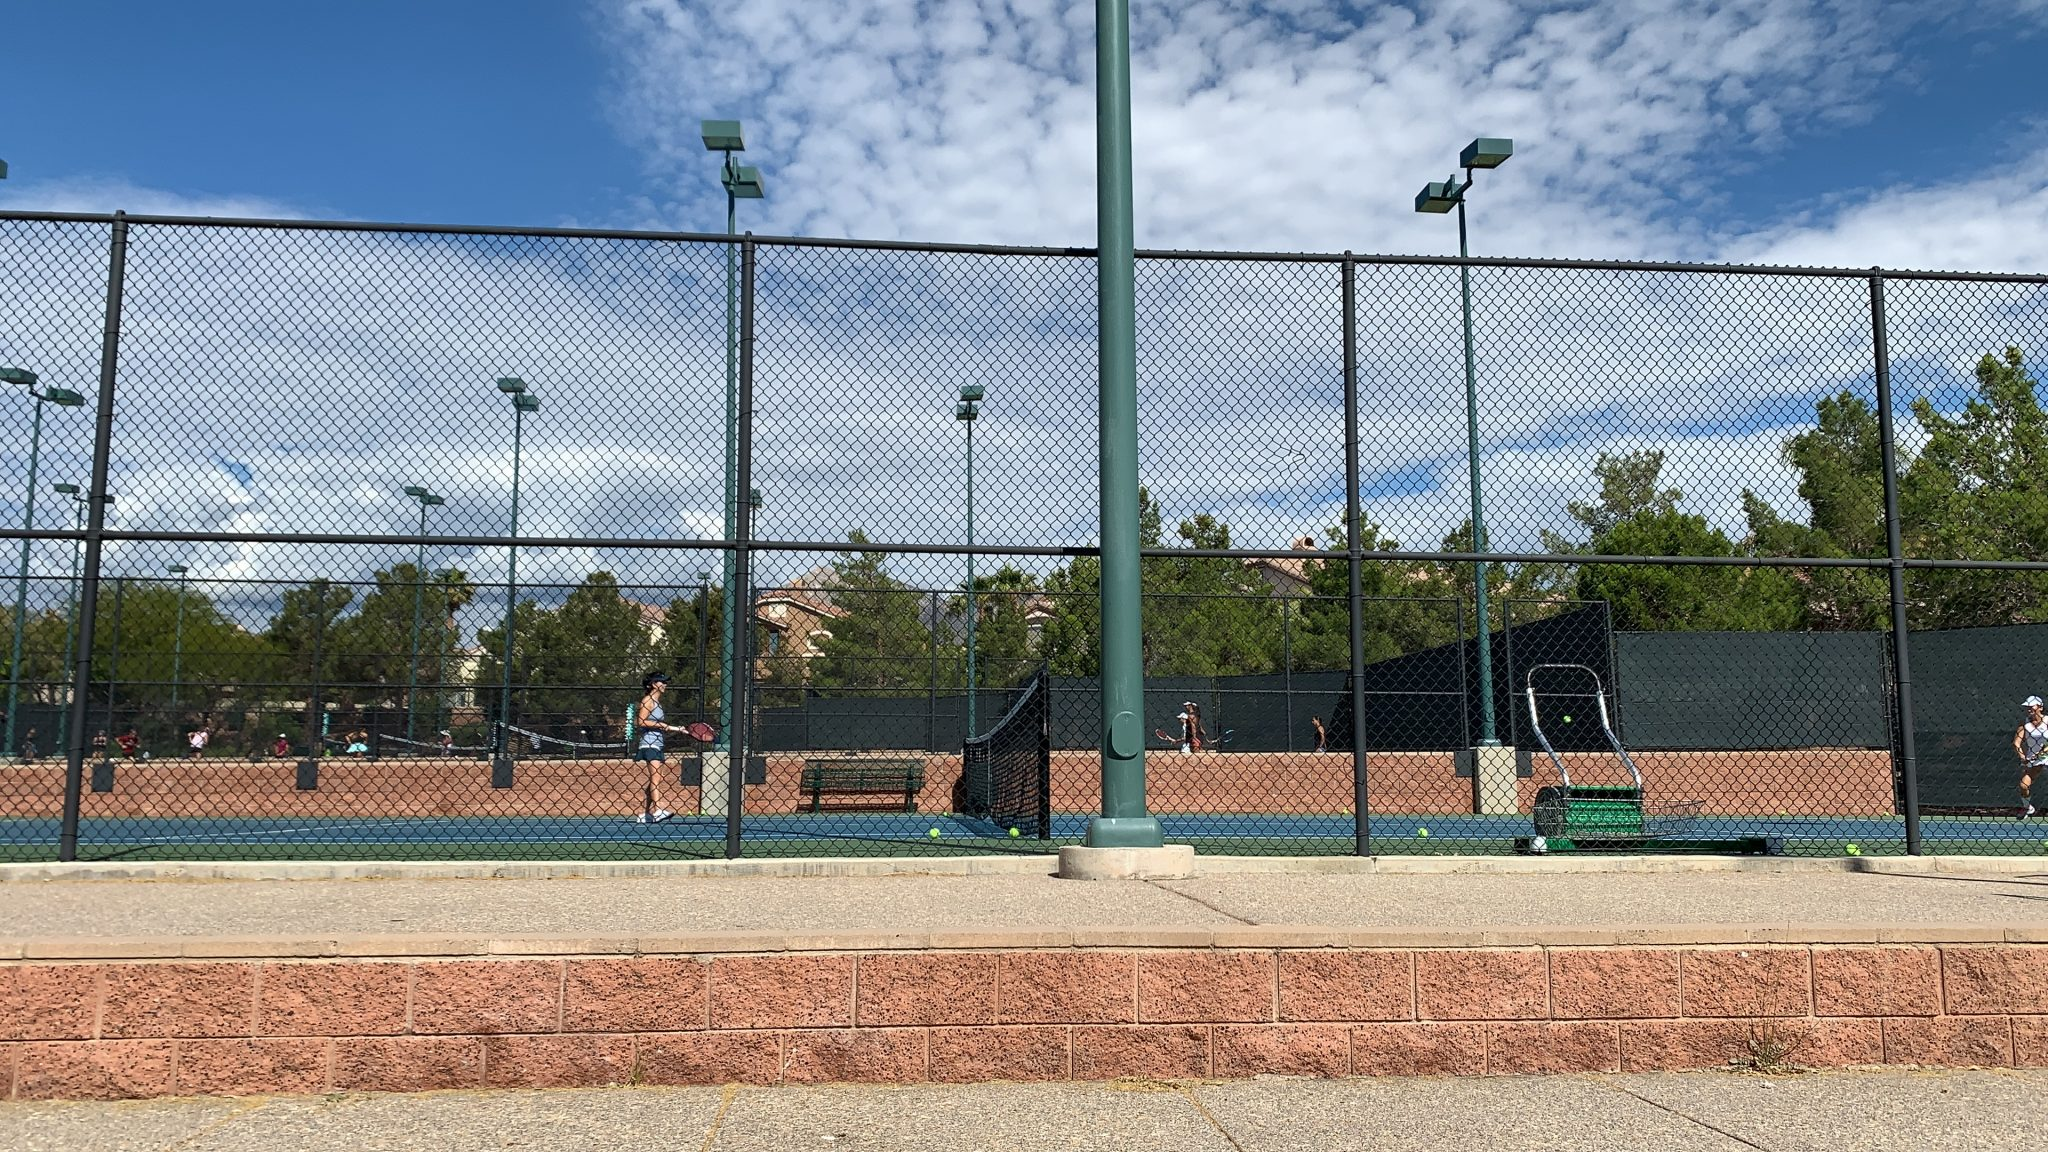 Arbors Tennis & Play Park